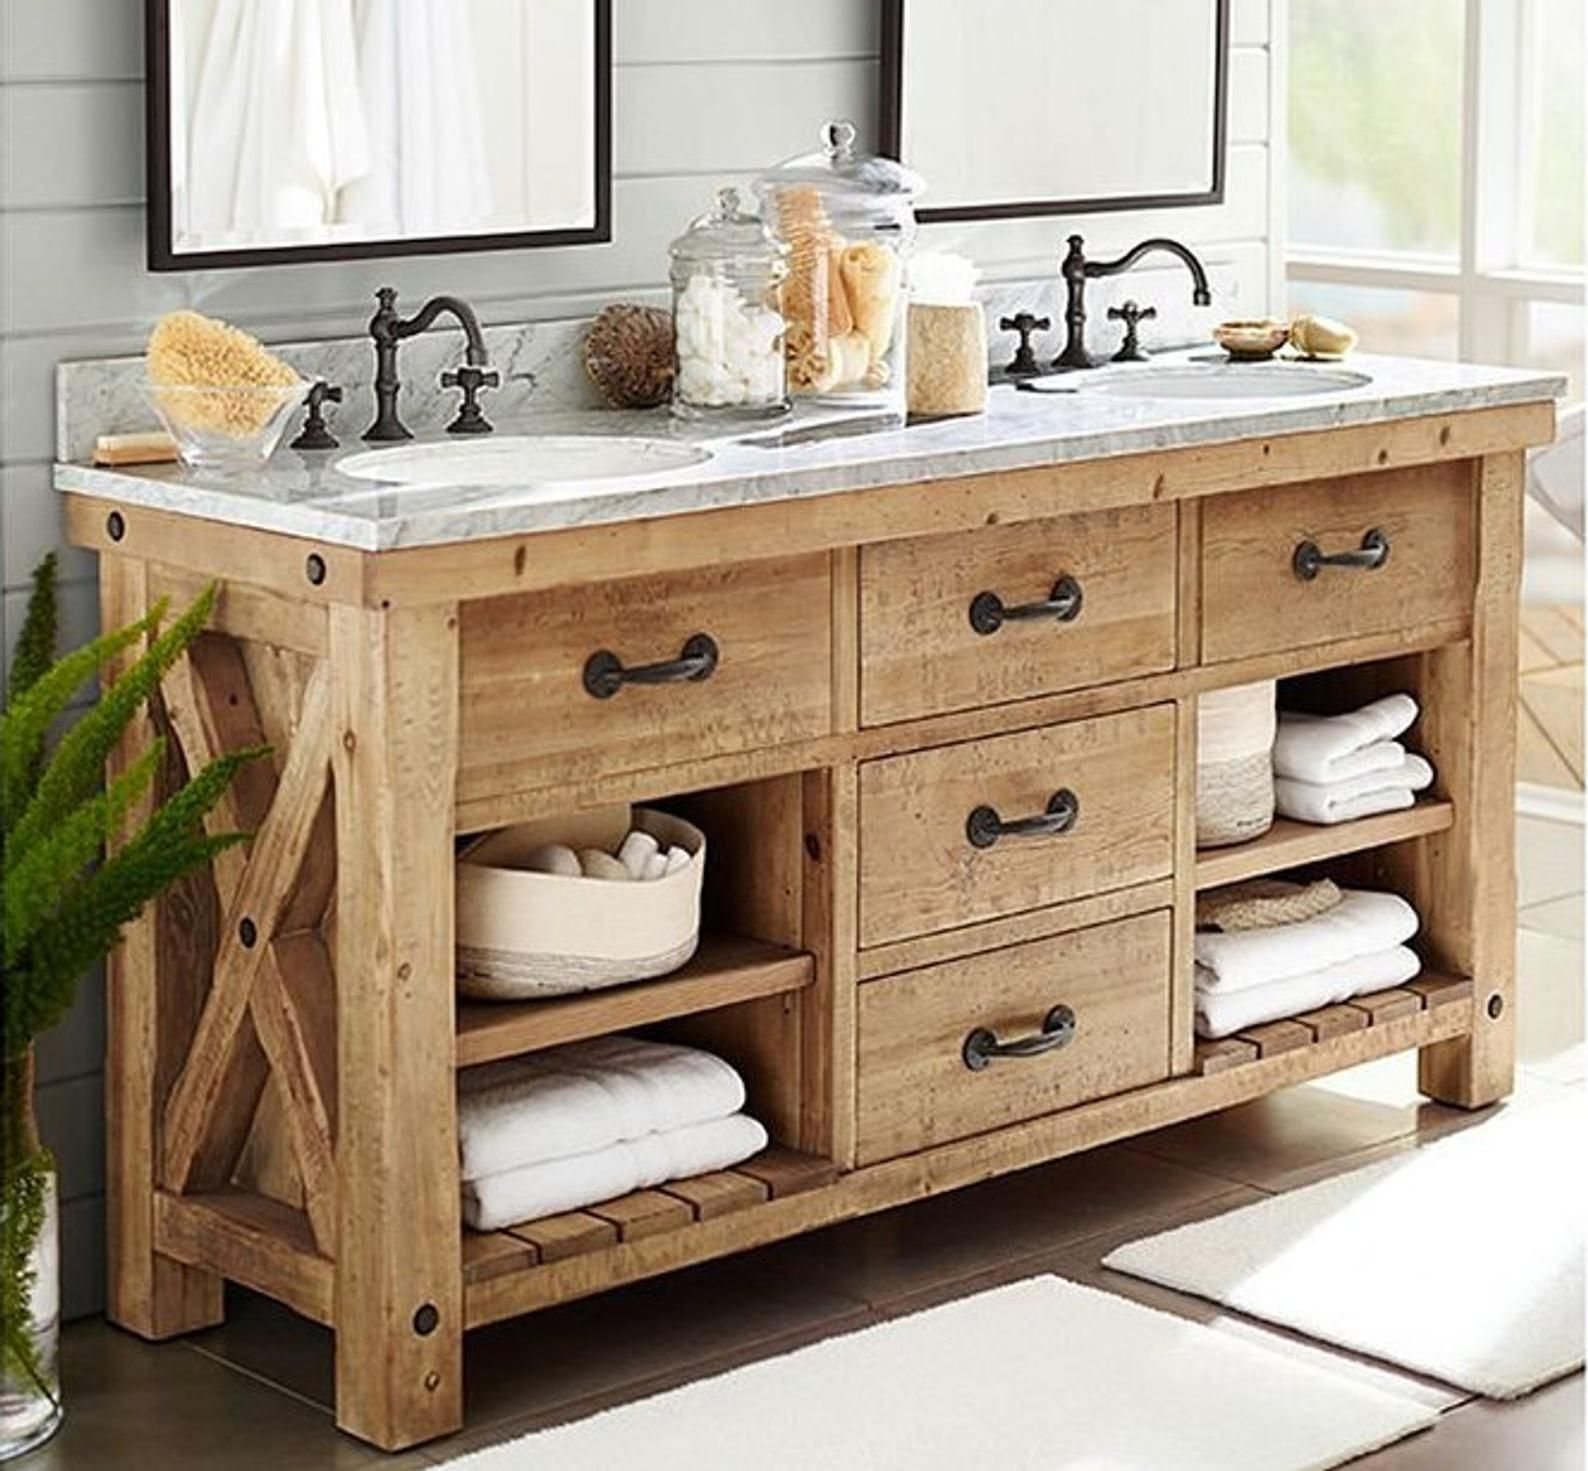 Double Sink Bathroom Vanity Etsy Double Sink Bathroom Vanity